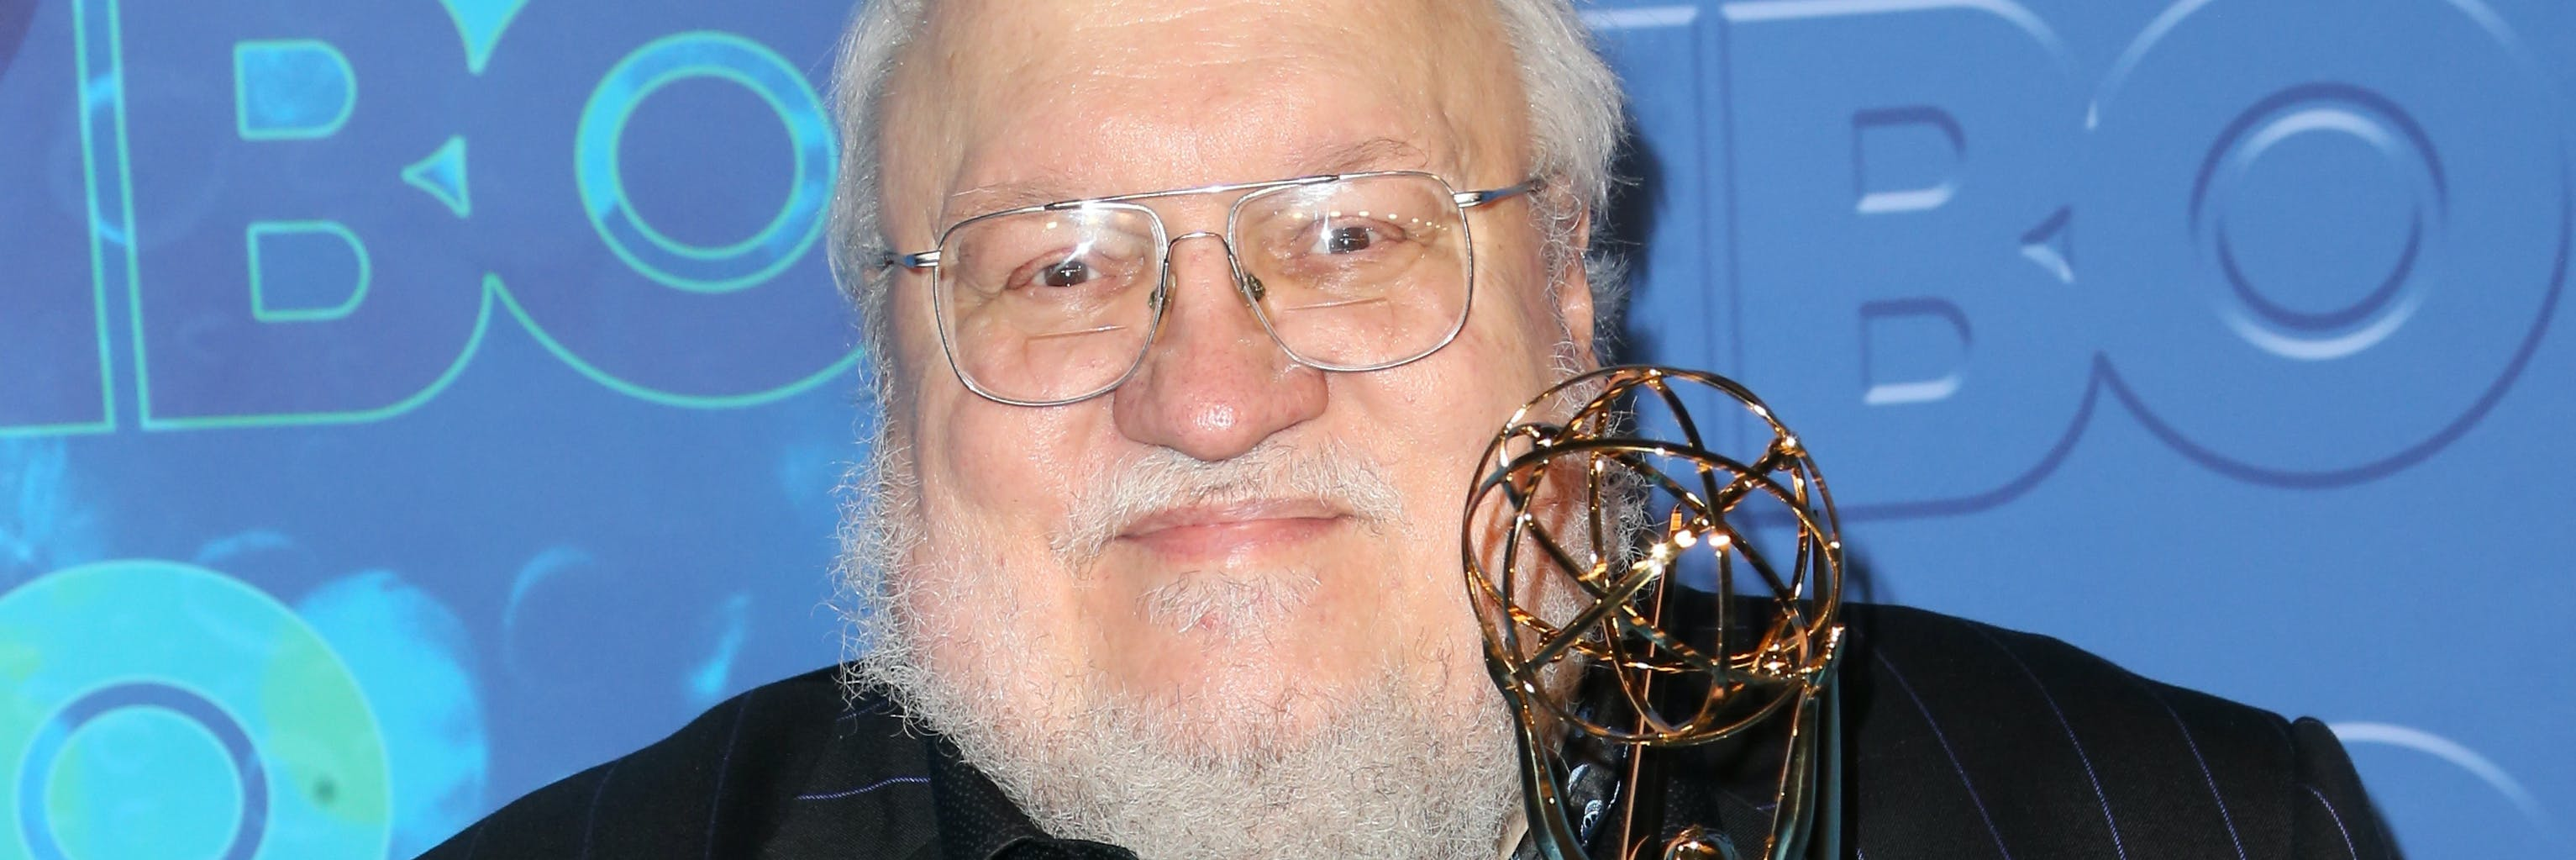 LOS ANGELES, CA - SEPTEMBER 18:  Author George R. R. Martin attends HBO's Official 2016 Emmy After Party at The Plaza at the Pacific Design Center on September 18, 2016 in Los Angeles, California.  (Photo by Frederick M. Brown/Getty Images)